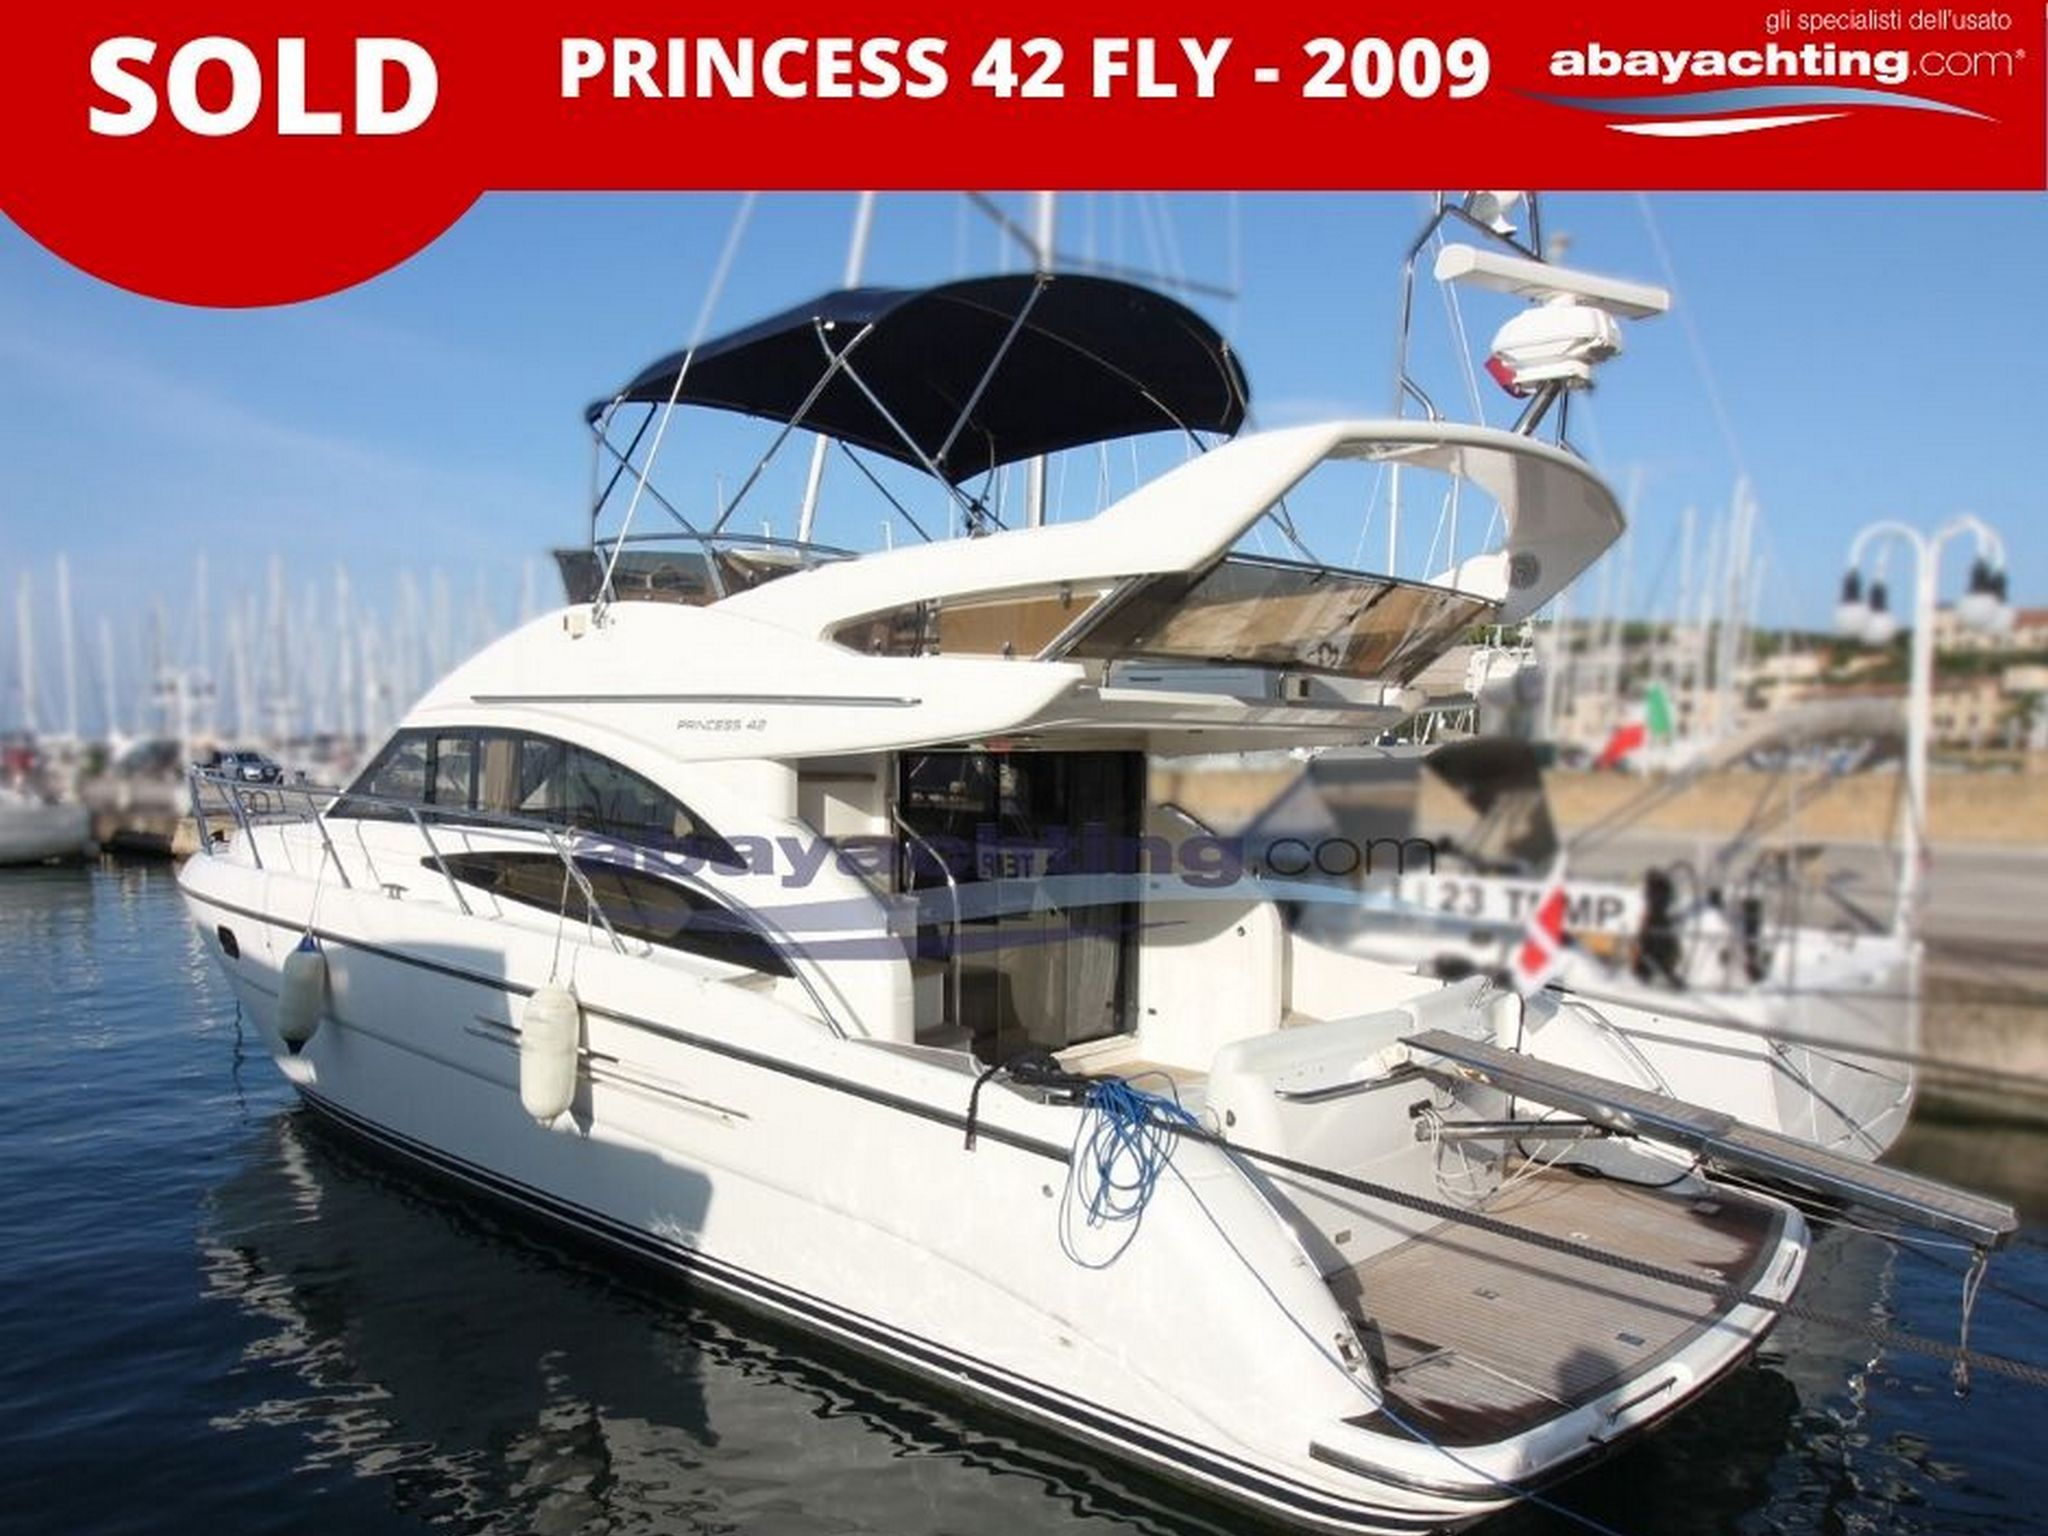 Princess 42 Fly vendu